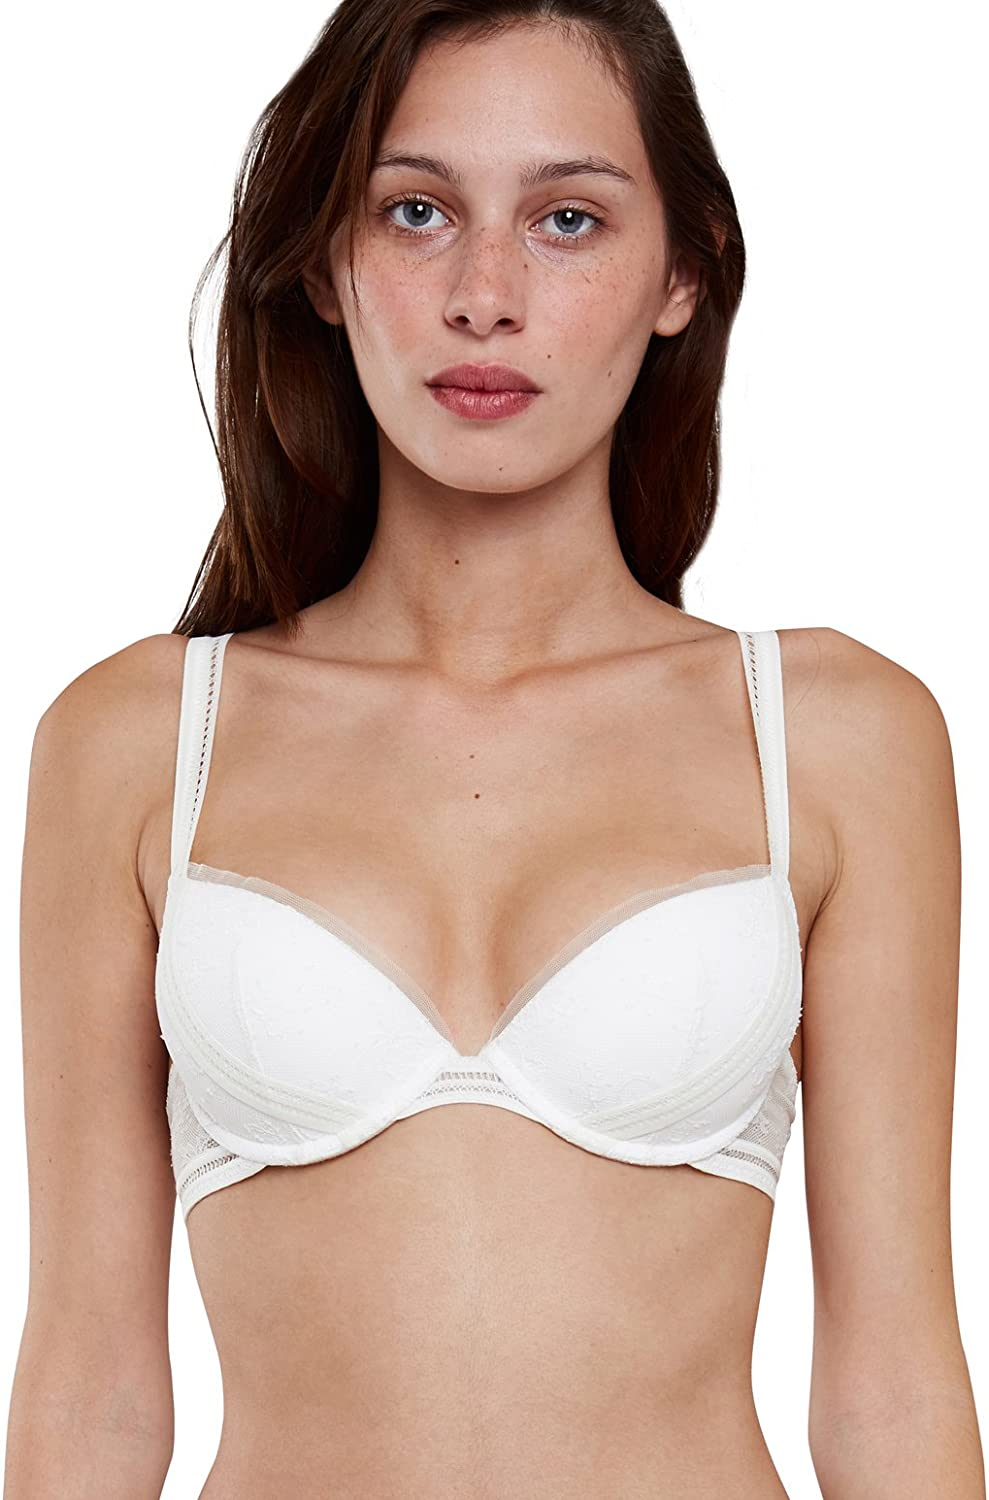 Maison Lejaby 16431801 Women's Miss Lejaby Lily White Lace Push Up Bra